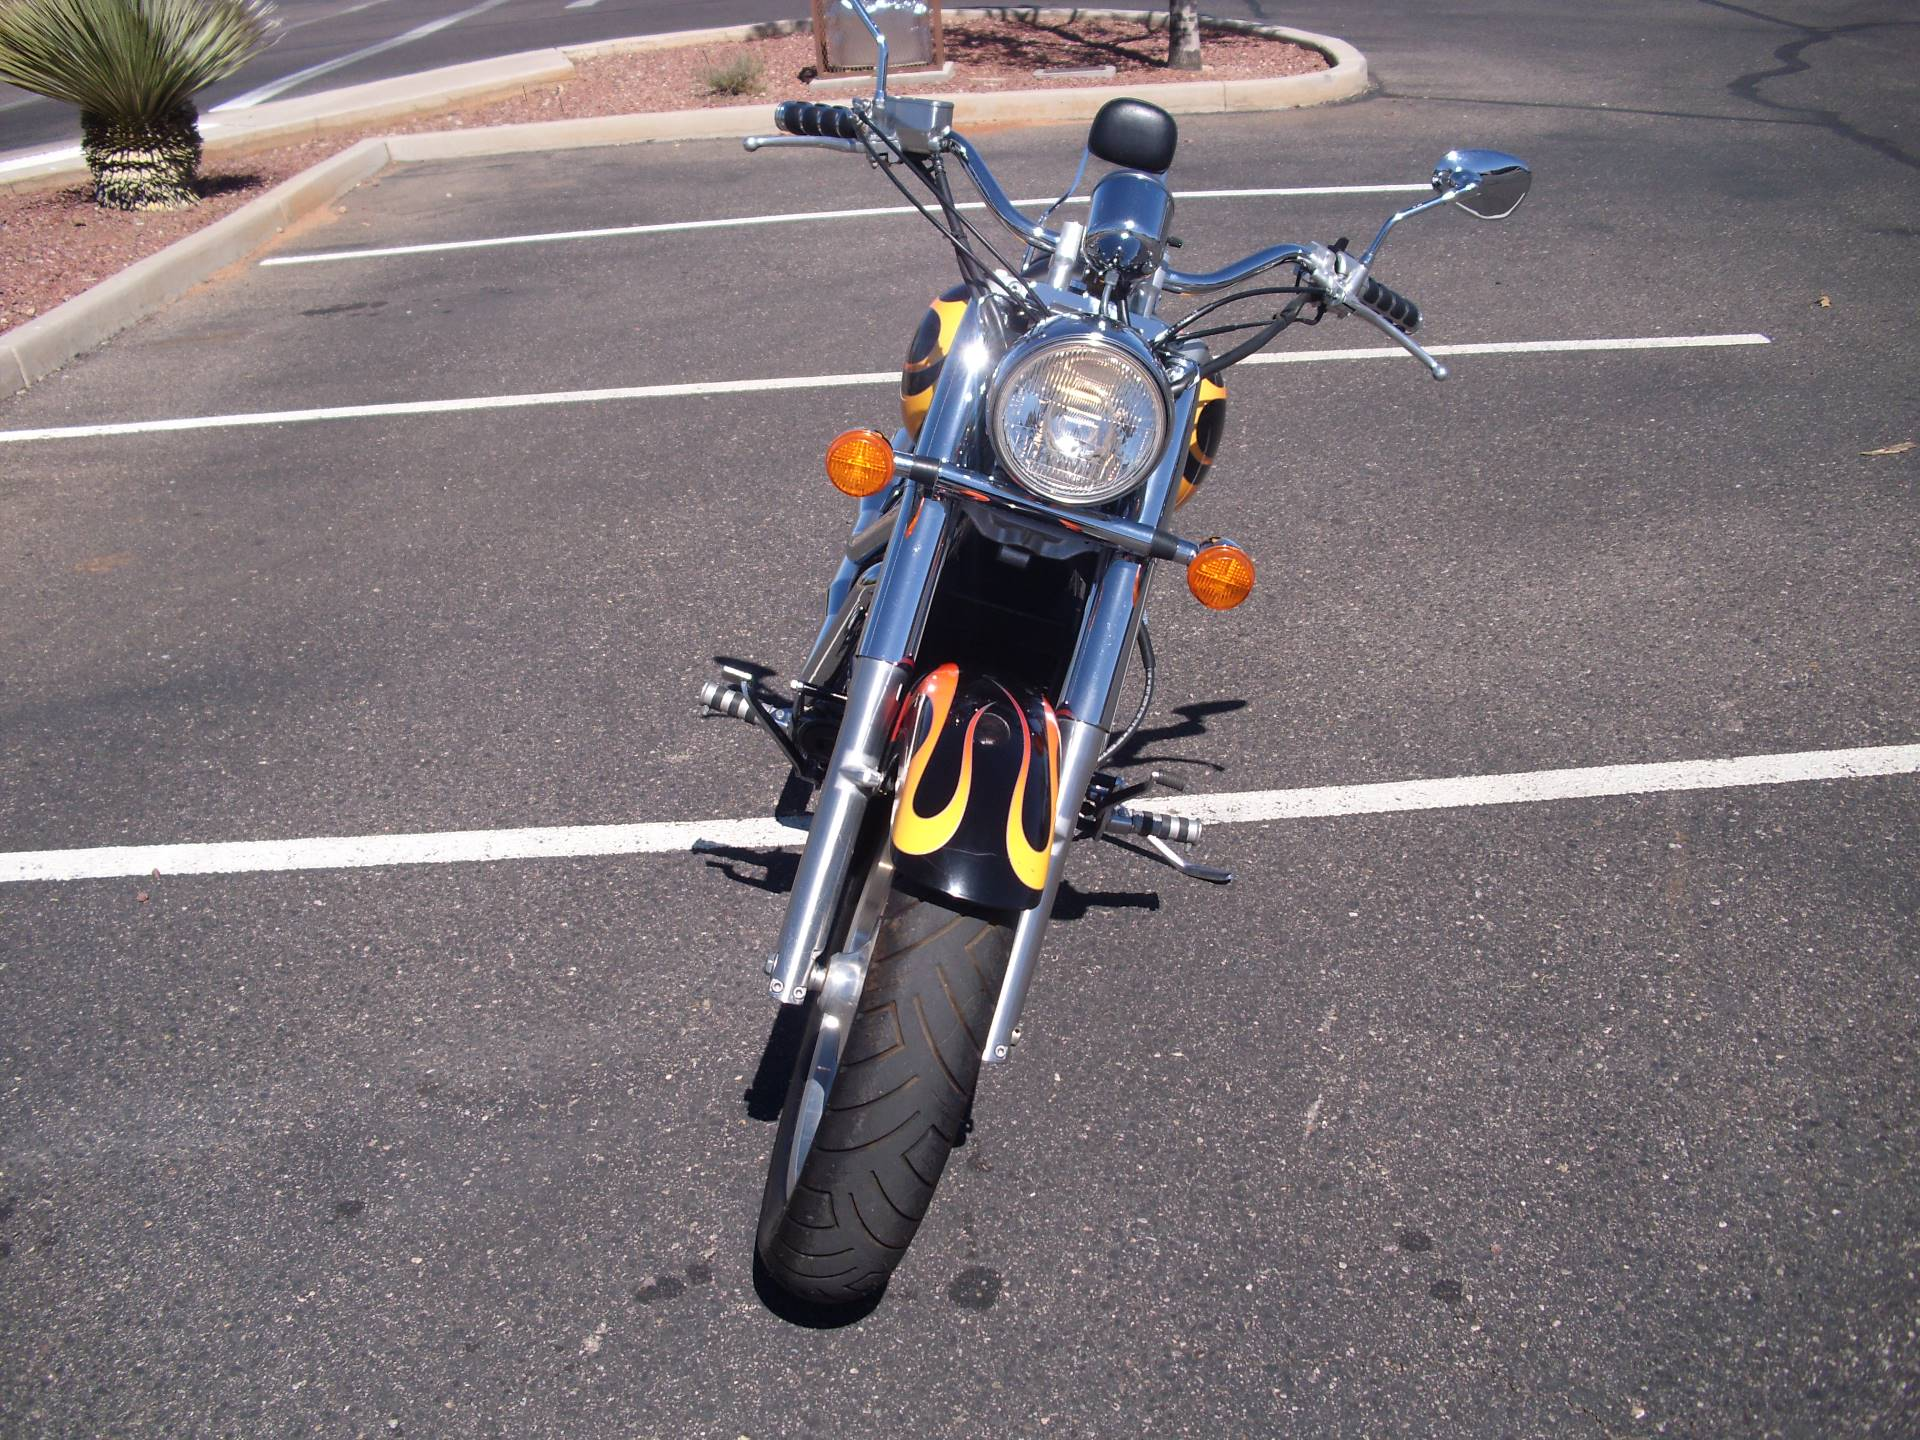 2007 Honda VT1100 in Sierra Vista, Arizona